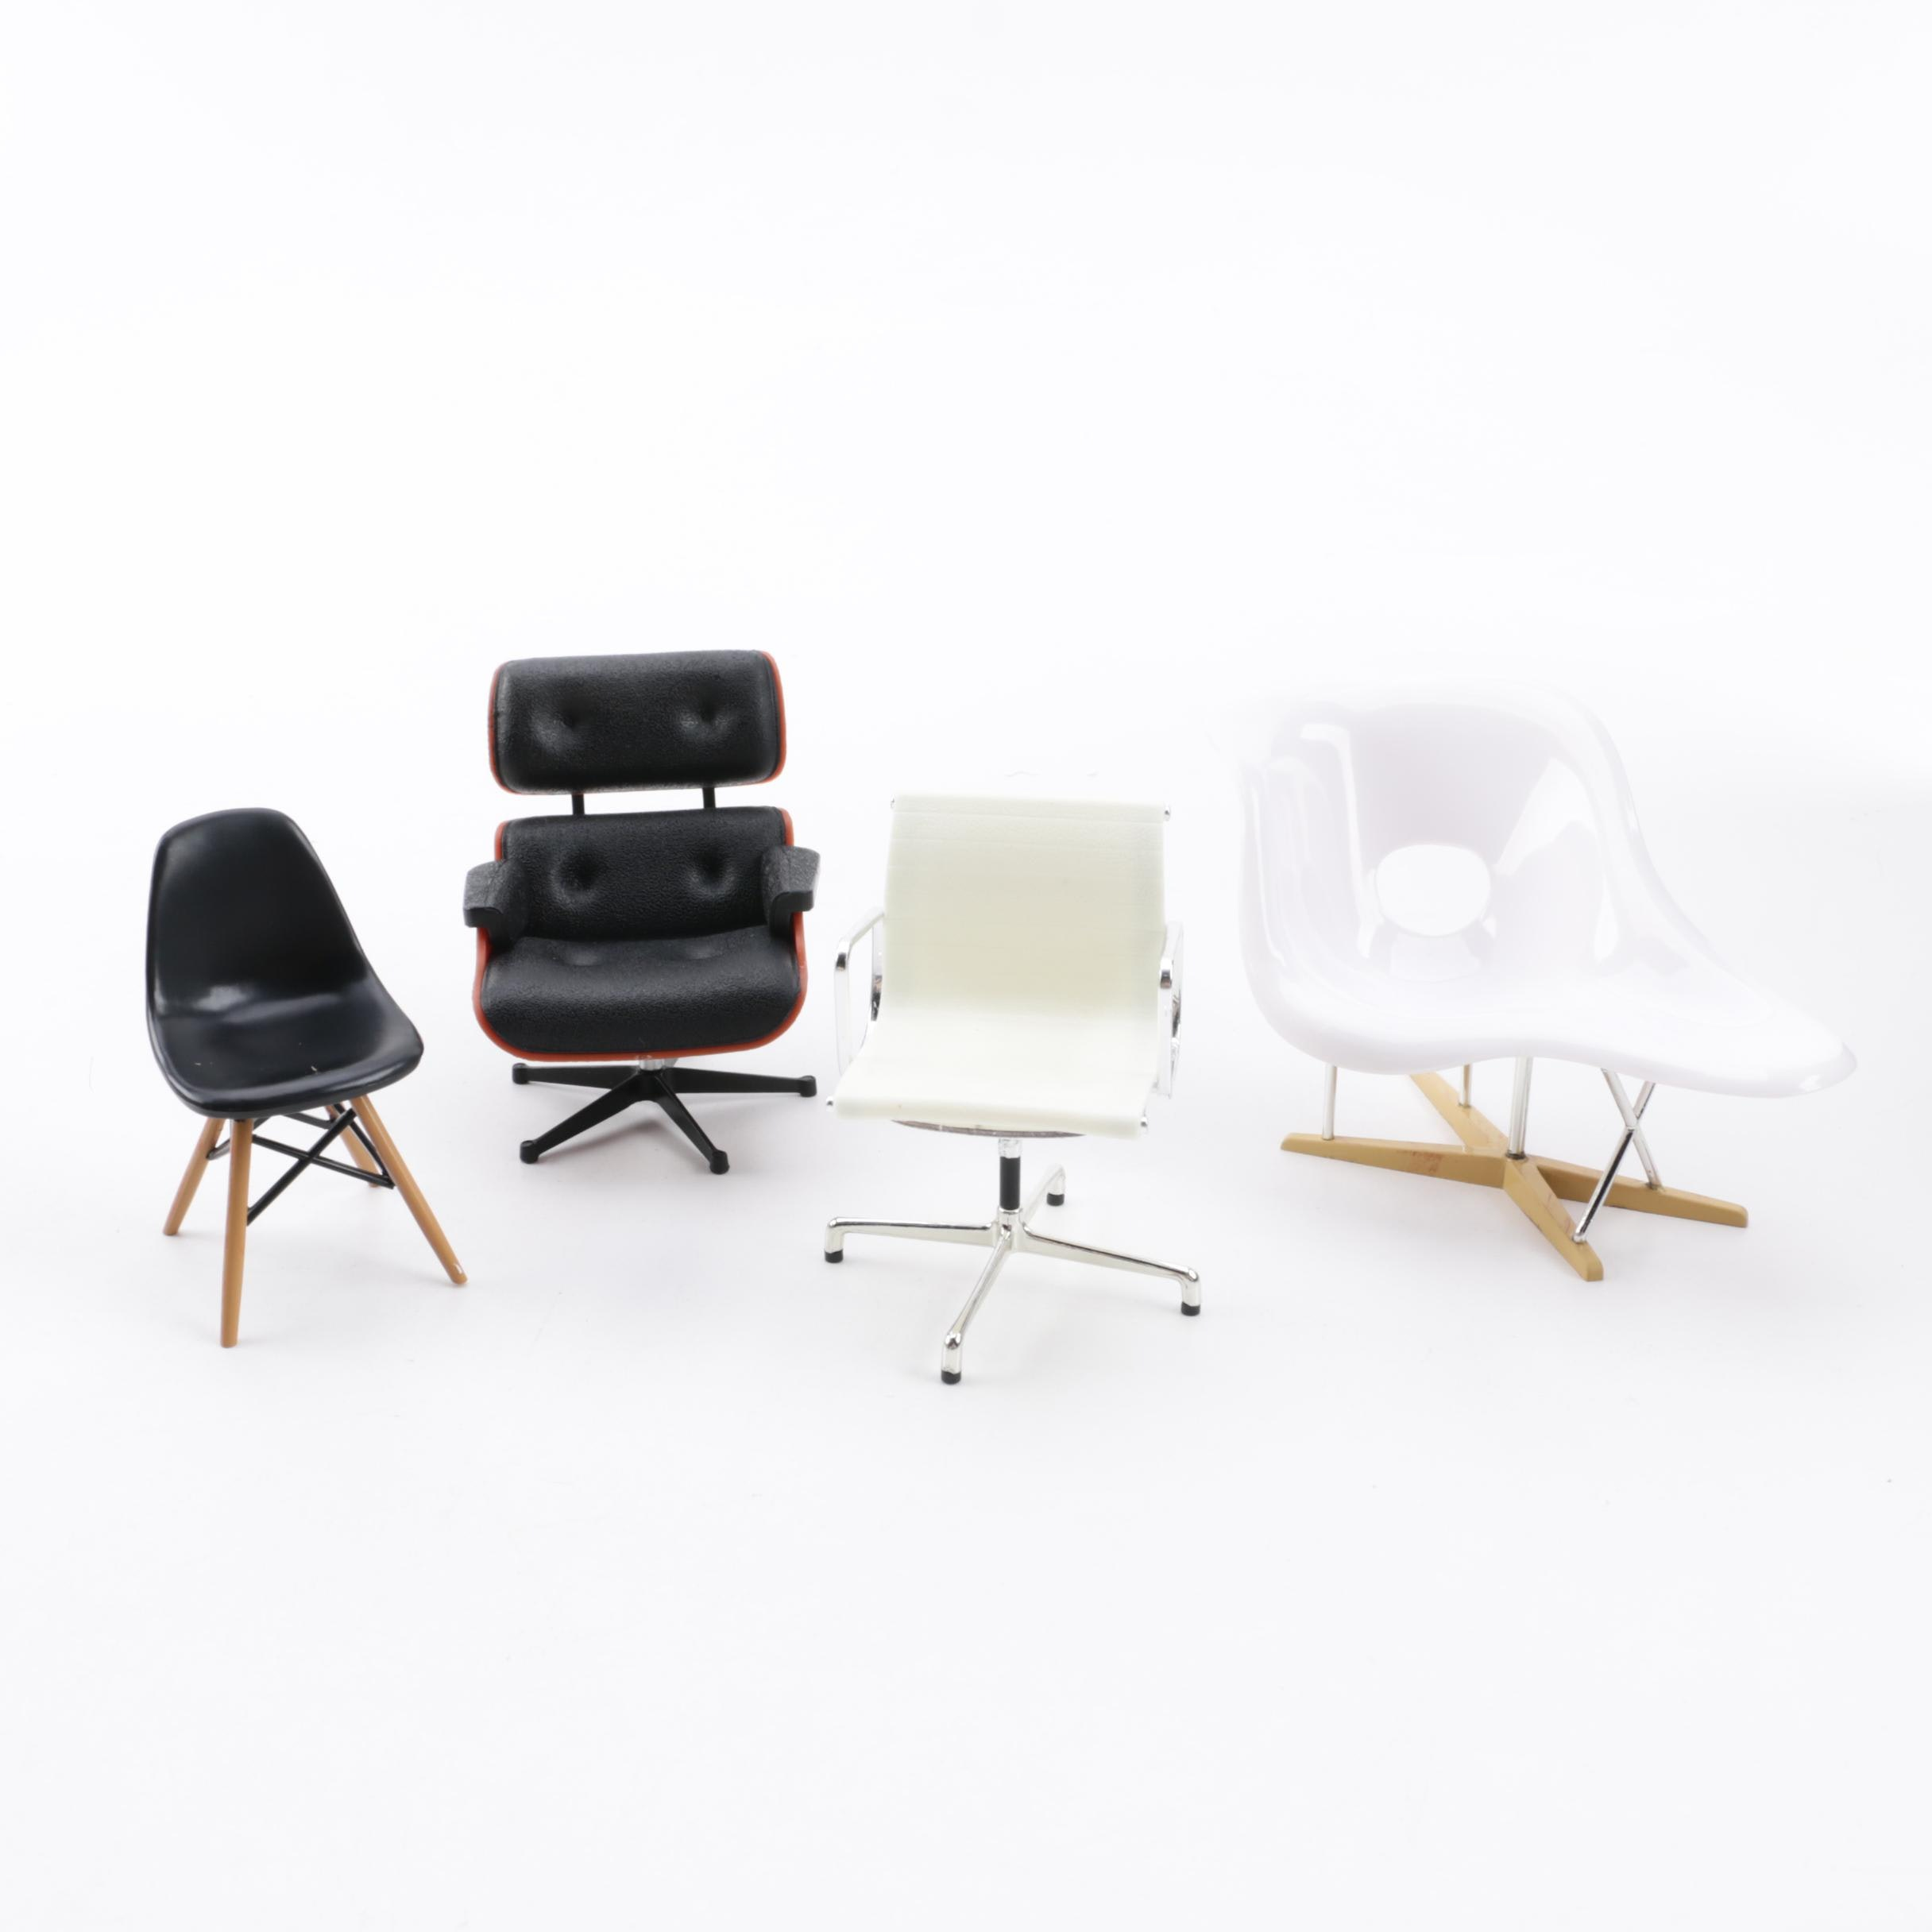 Miniature Eames Lounge Chair, DSW Chair, La Chaise and Management Chair